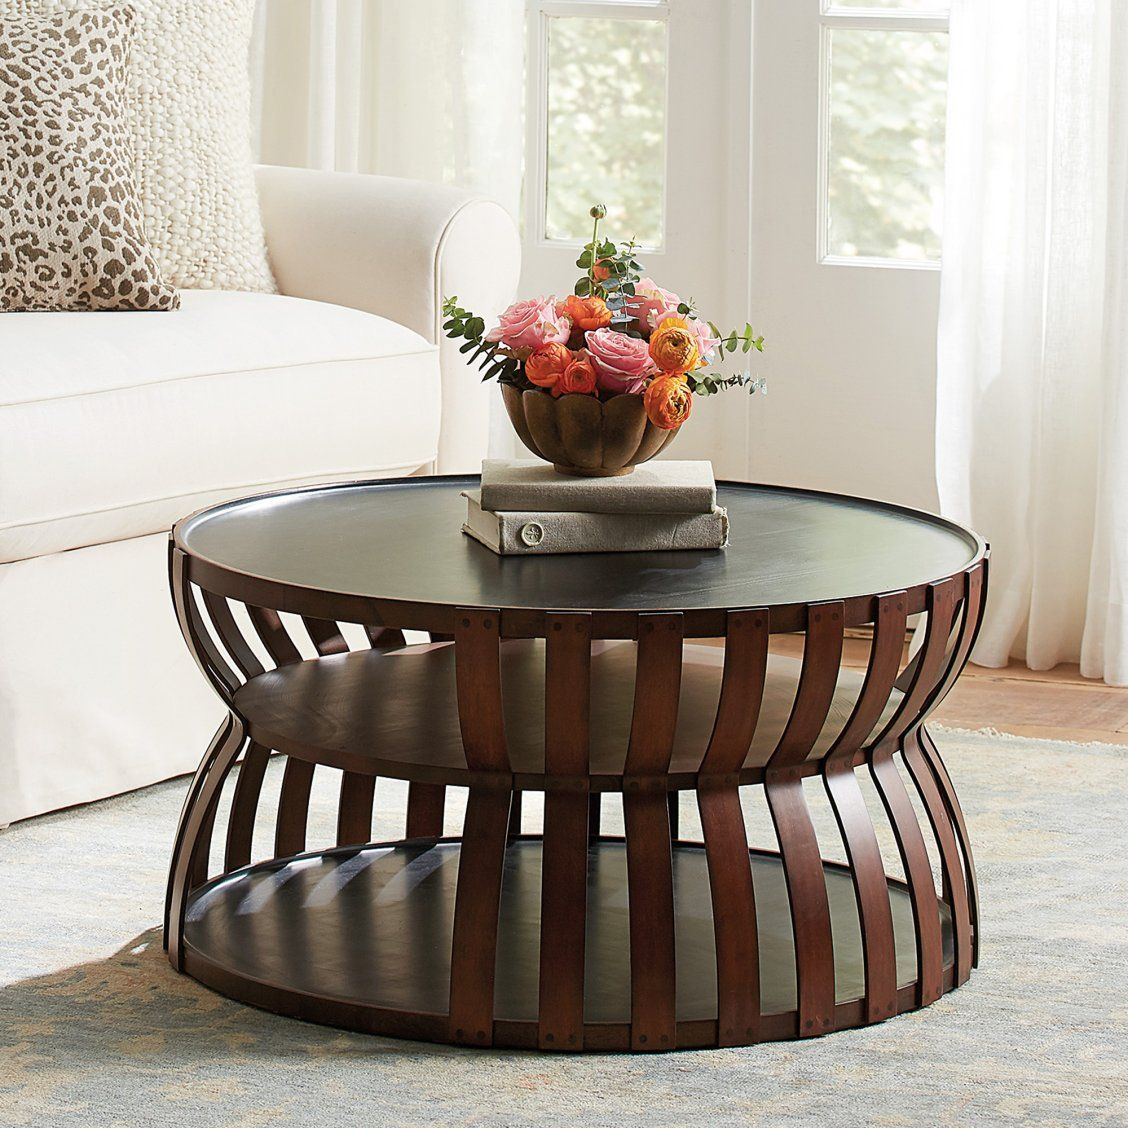 Imani coffee table in 2020 round coffee table round